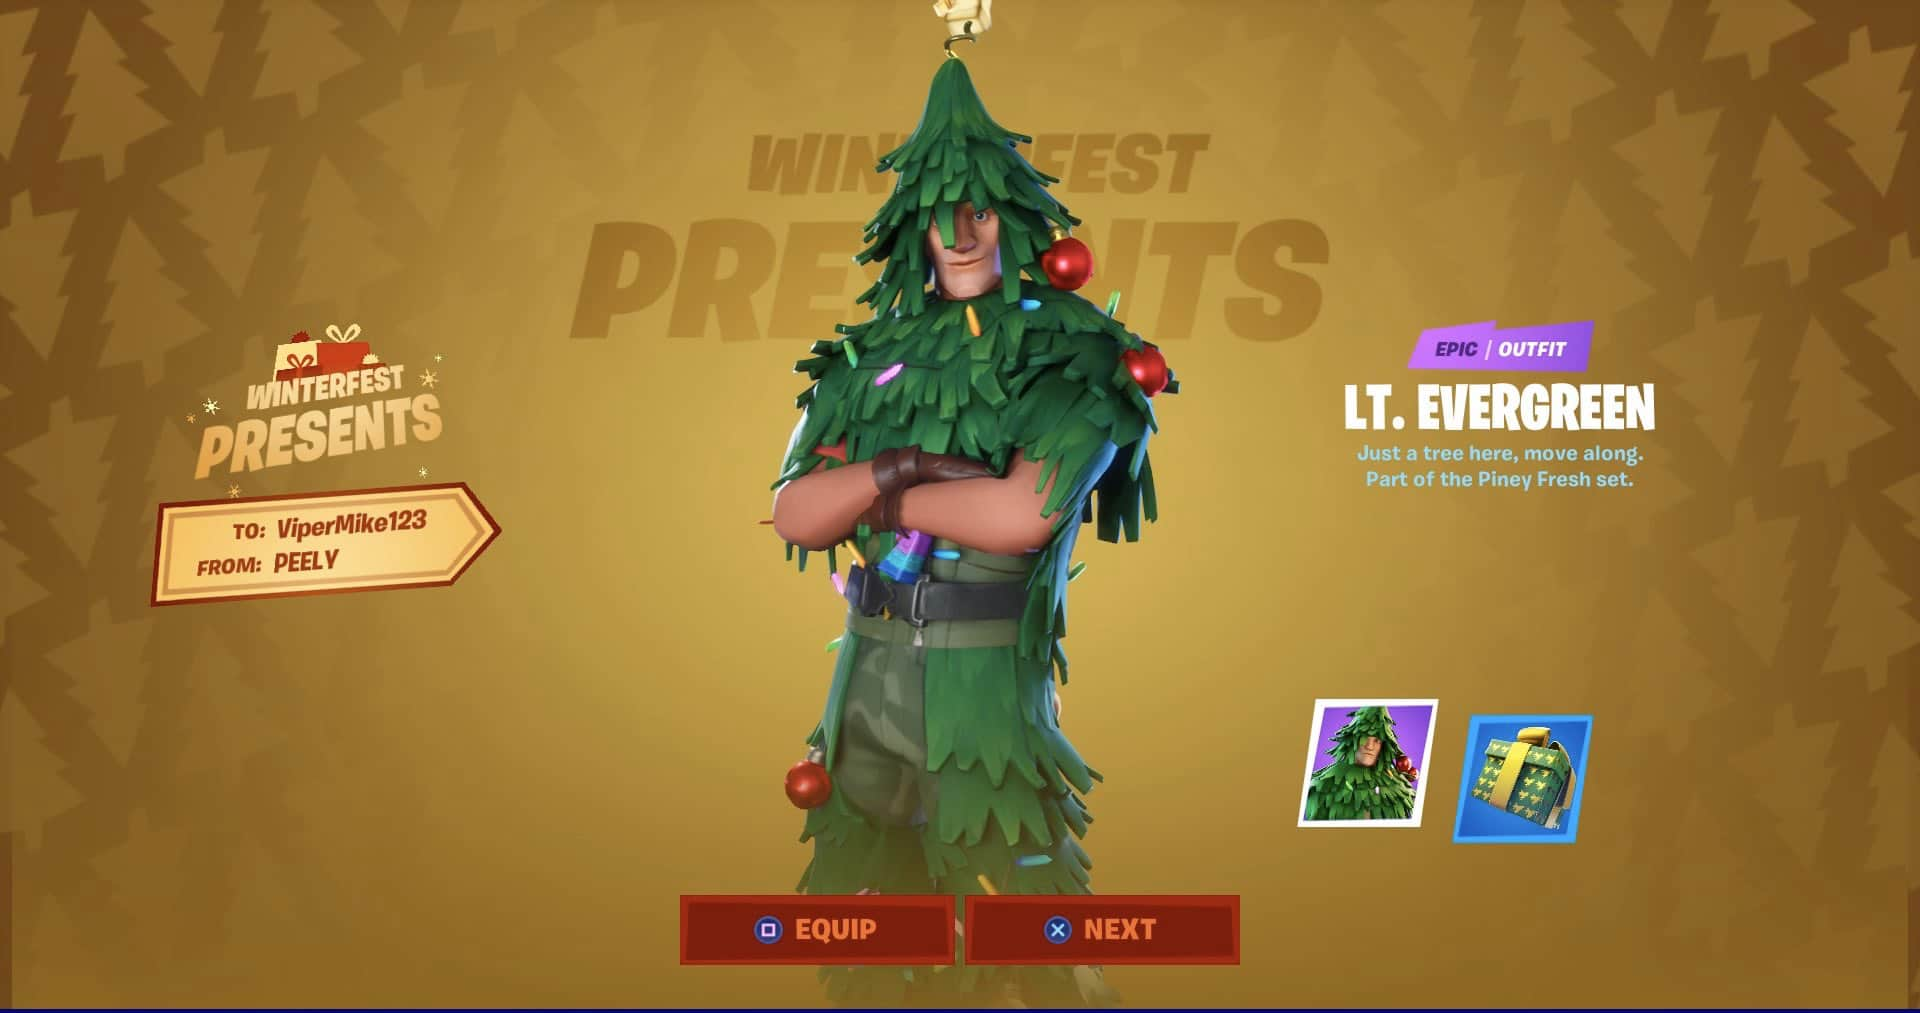 How To Get Free Fortnite Lt Evergreen Skin On Pc Ps4 Xbox One Mobile Dexerto